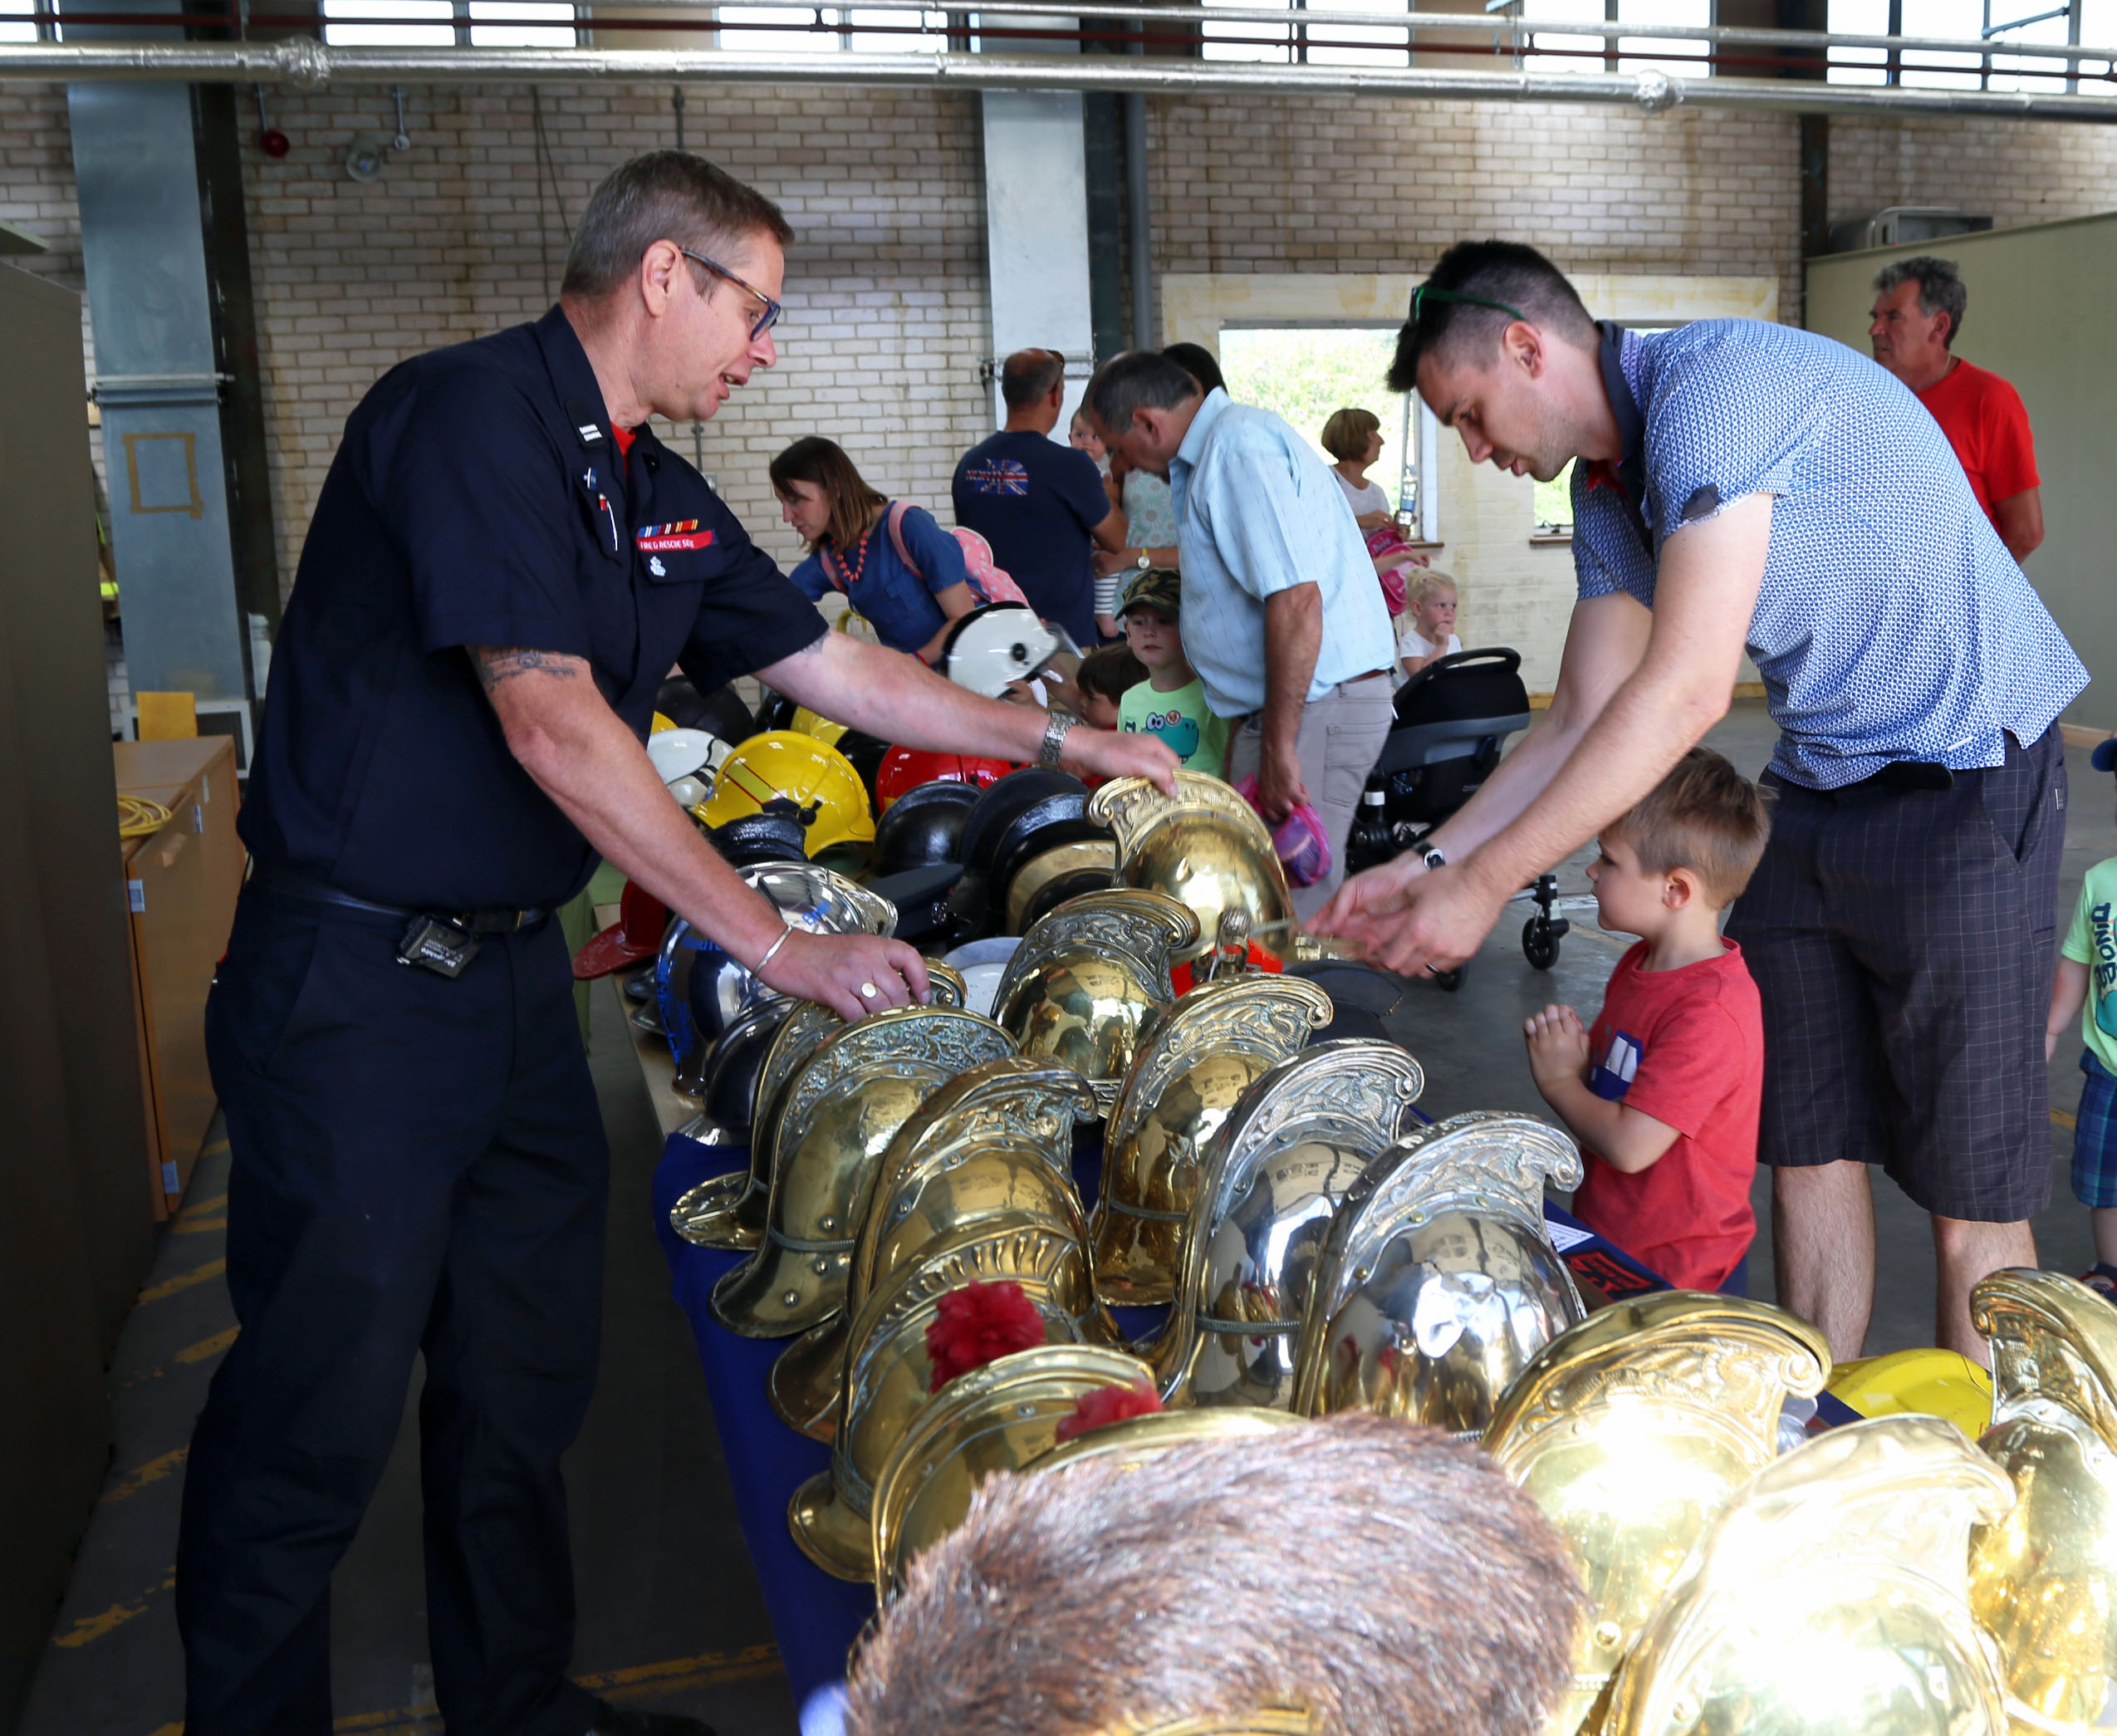 A selection of old firefighter helmets from through the ages were on display at Shrewsbury fire station open day